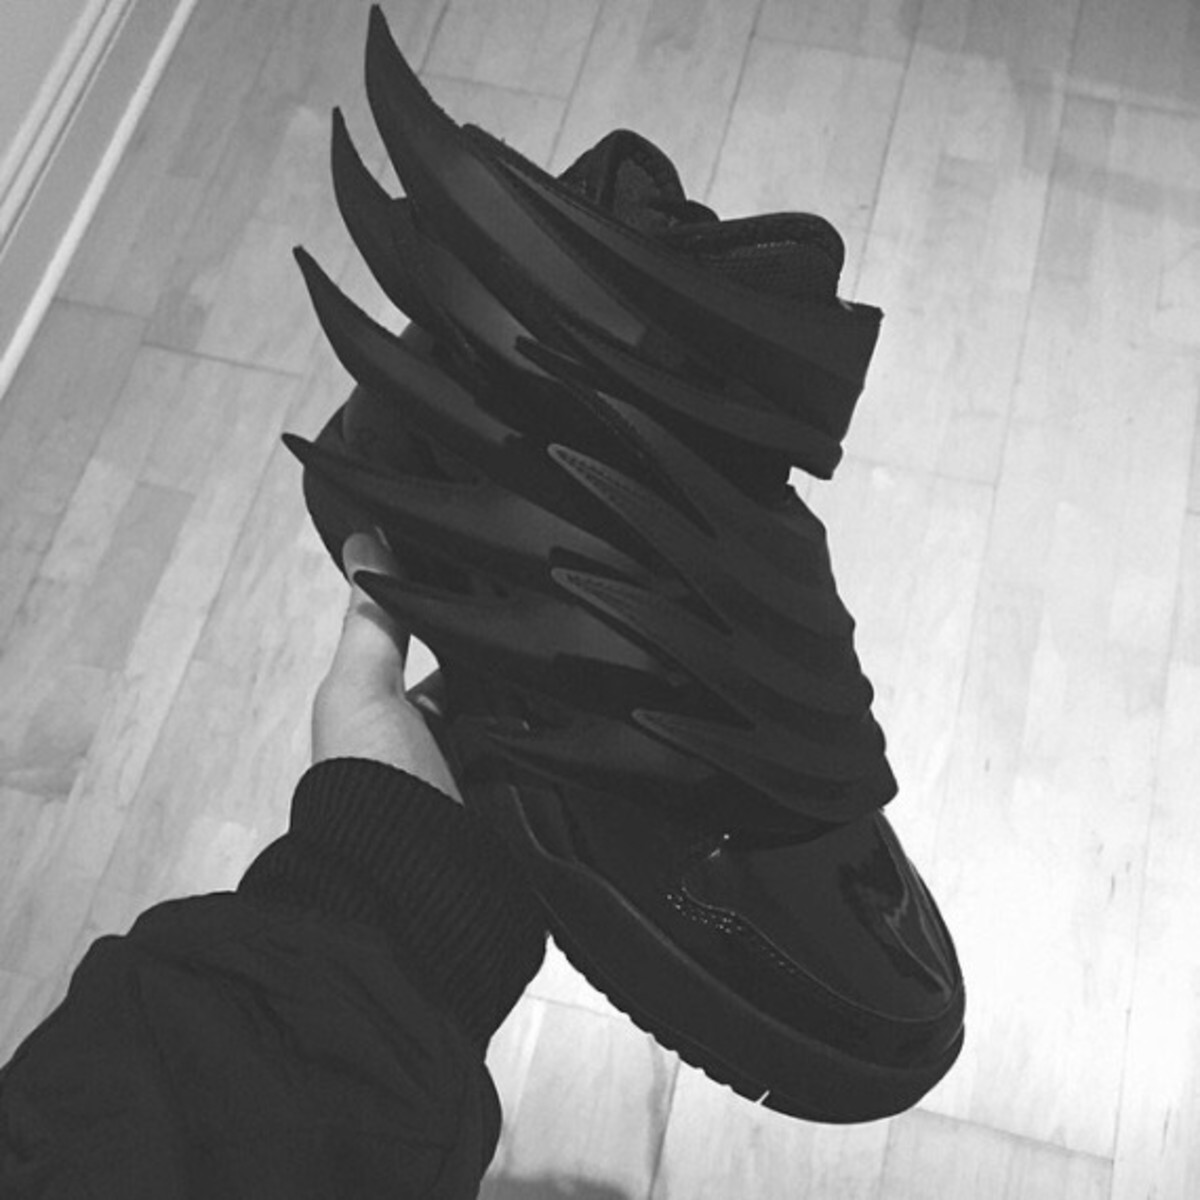 jeremy-scott-adidas-dark-knight-03